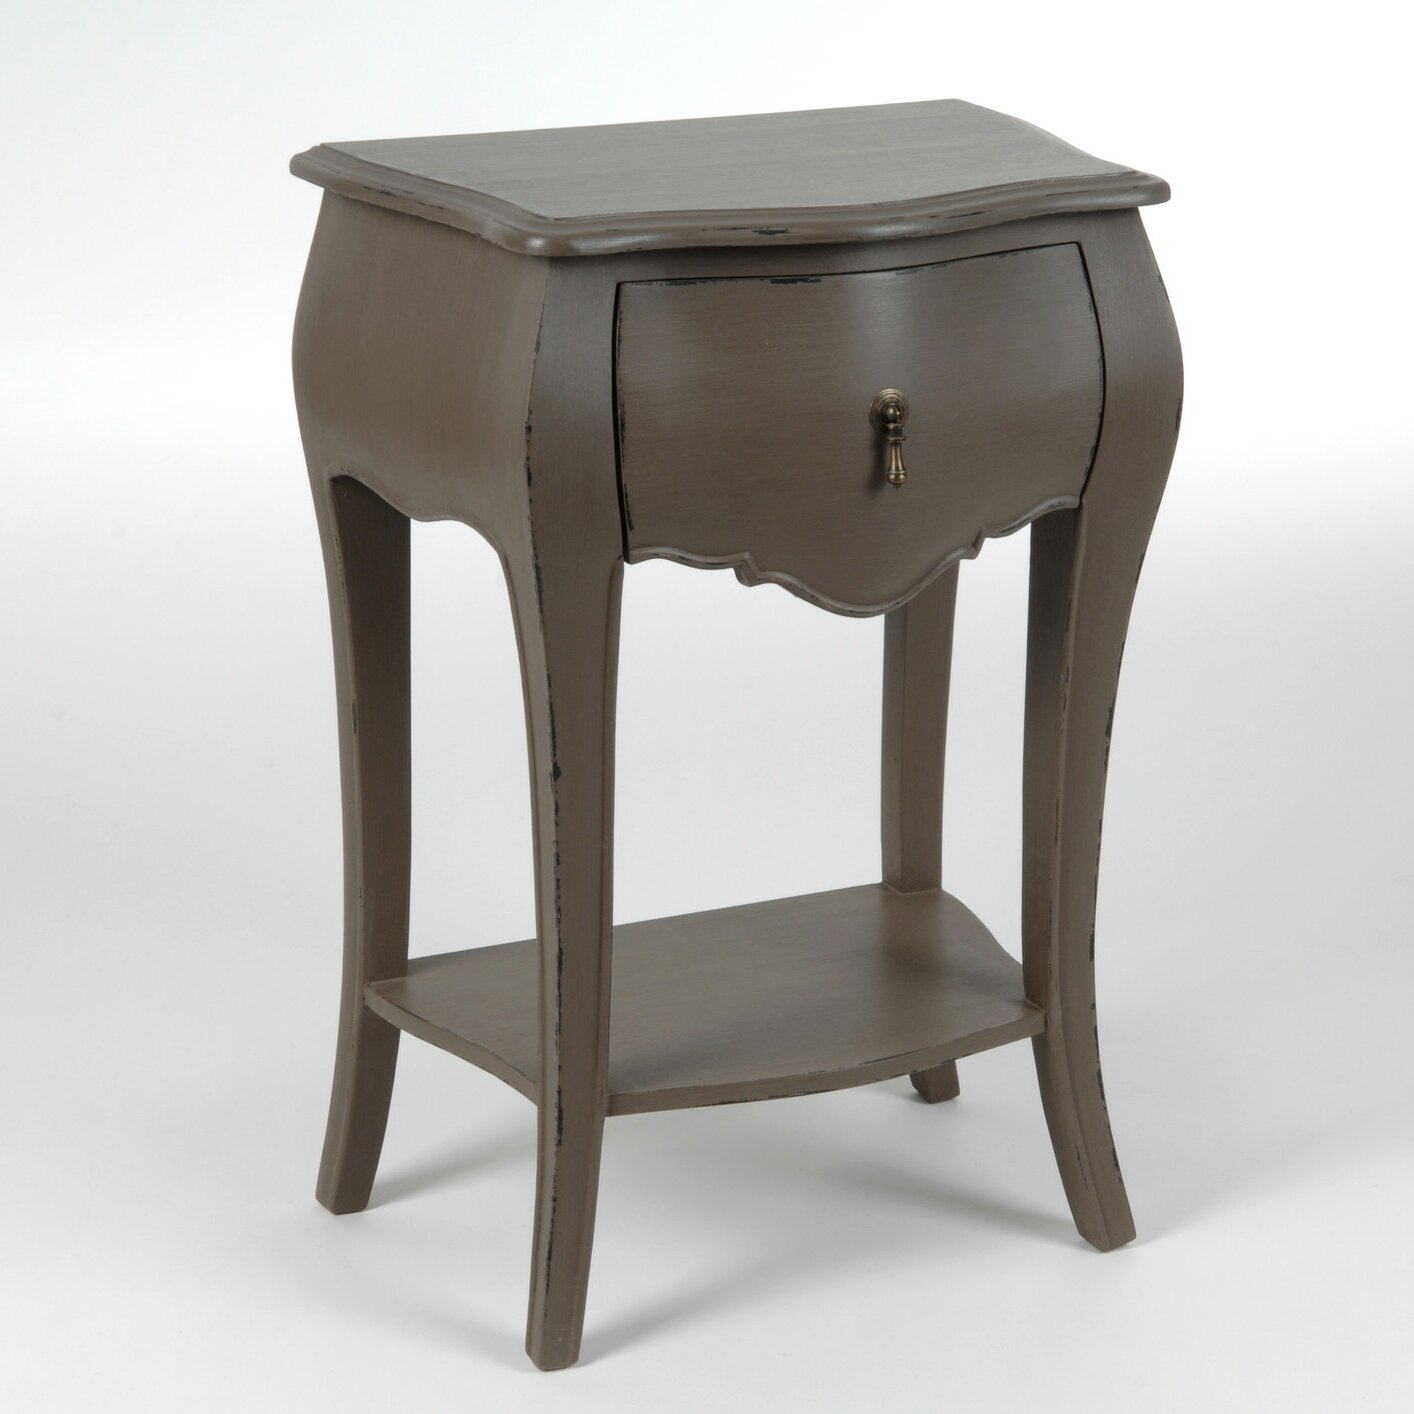 Ch teau chic tuscany 1 drawer bedside table wayfair uk for 1 drawer bedside table